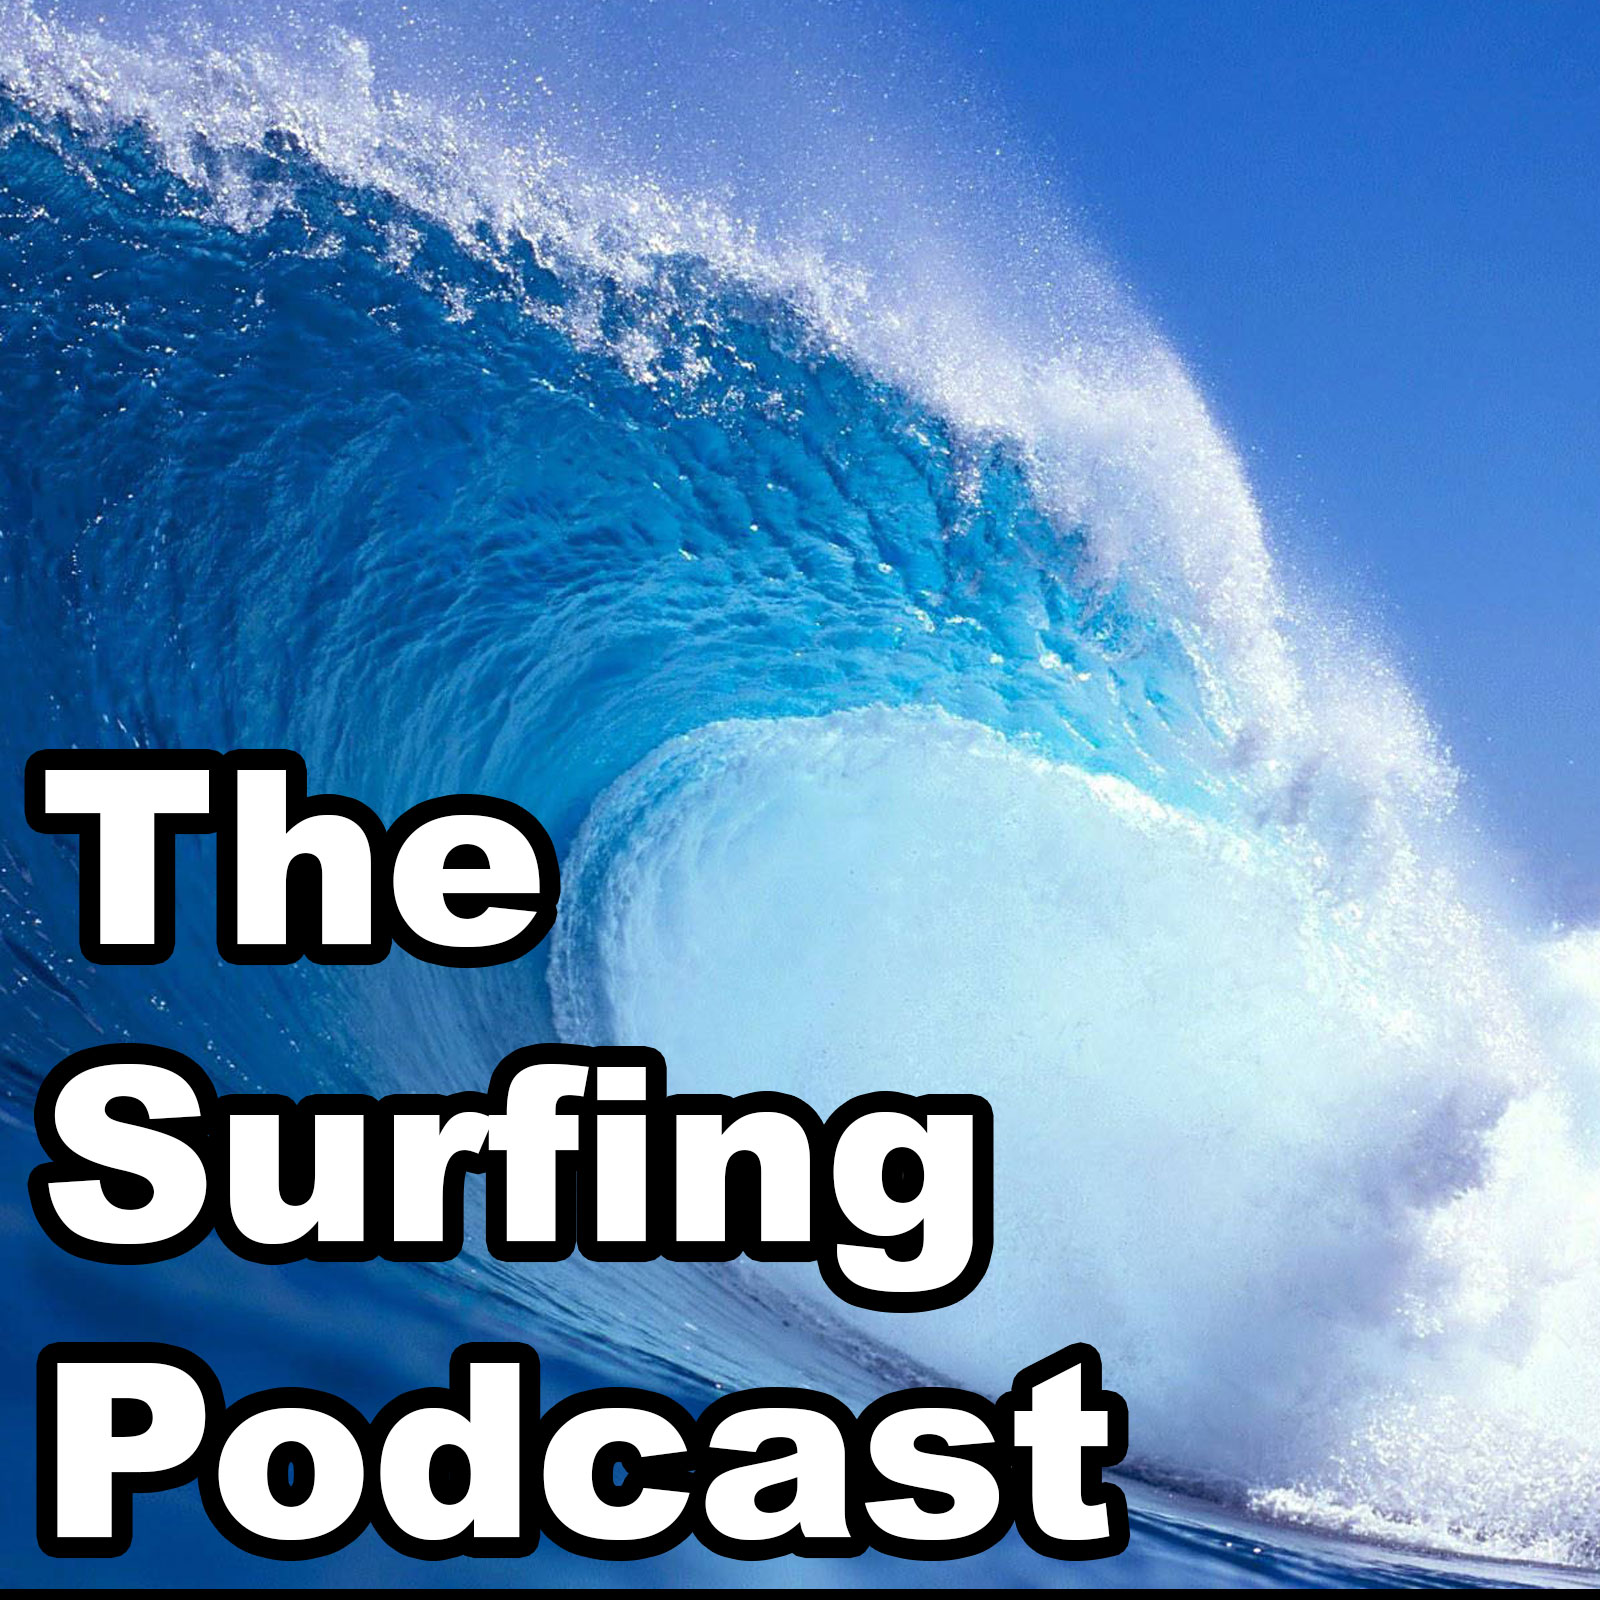 The Surfing Podcast